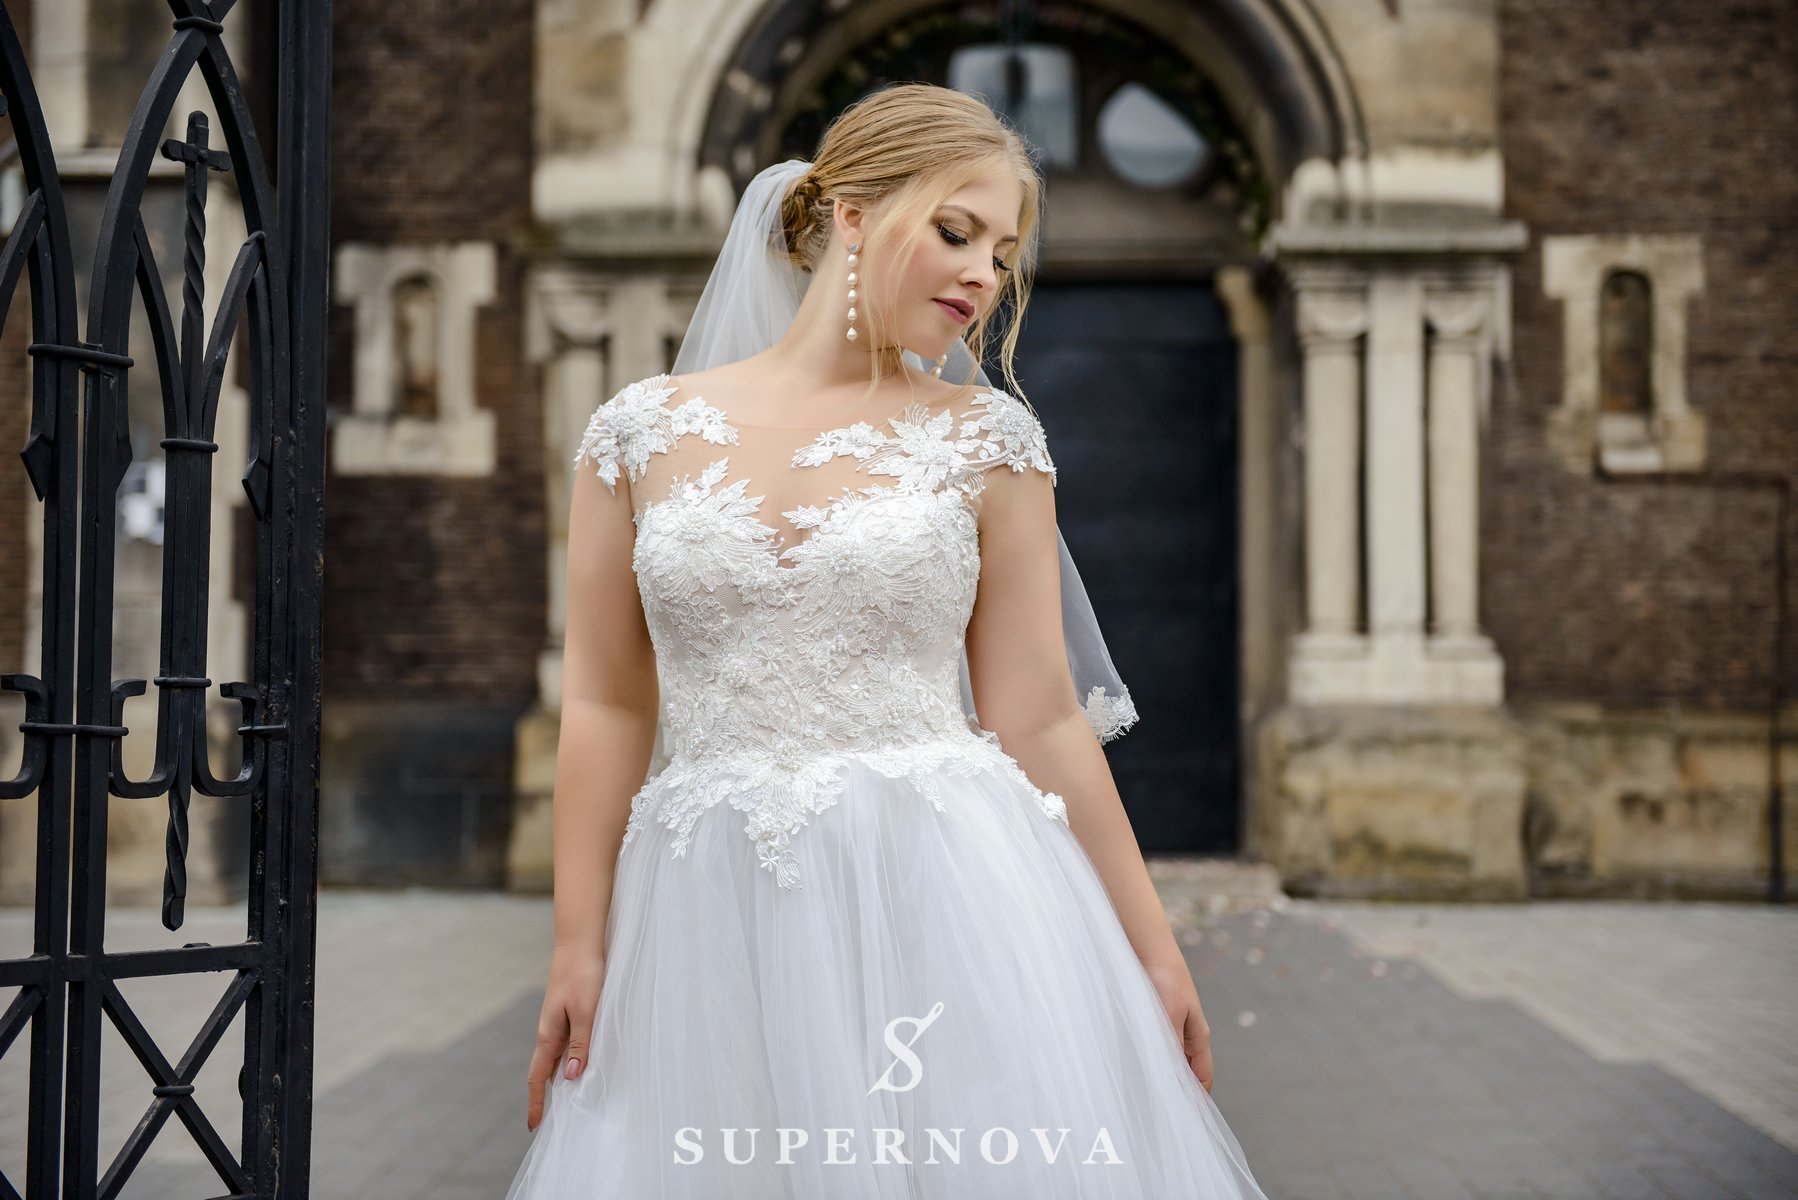 Plus size wedding dress with a puffy skirt on wholesale from SuperNova-1